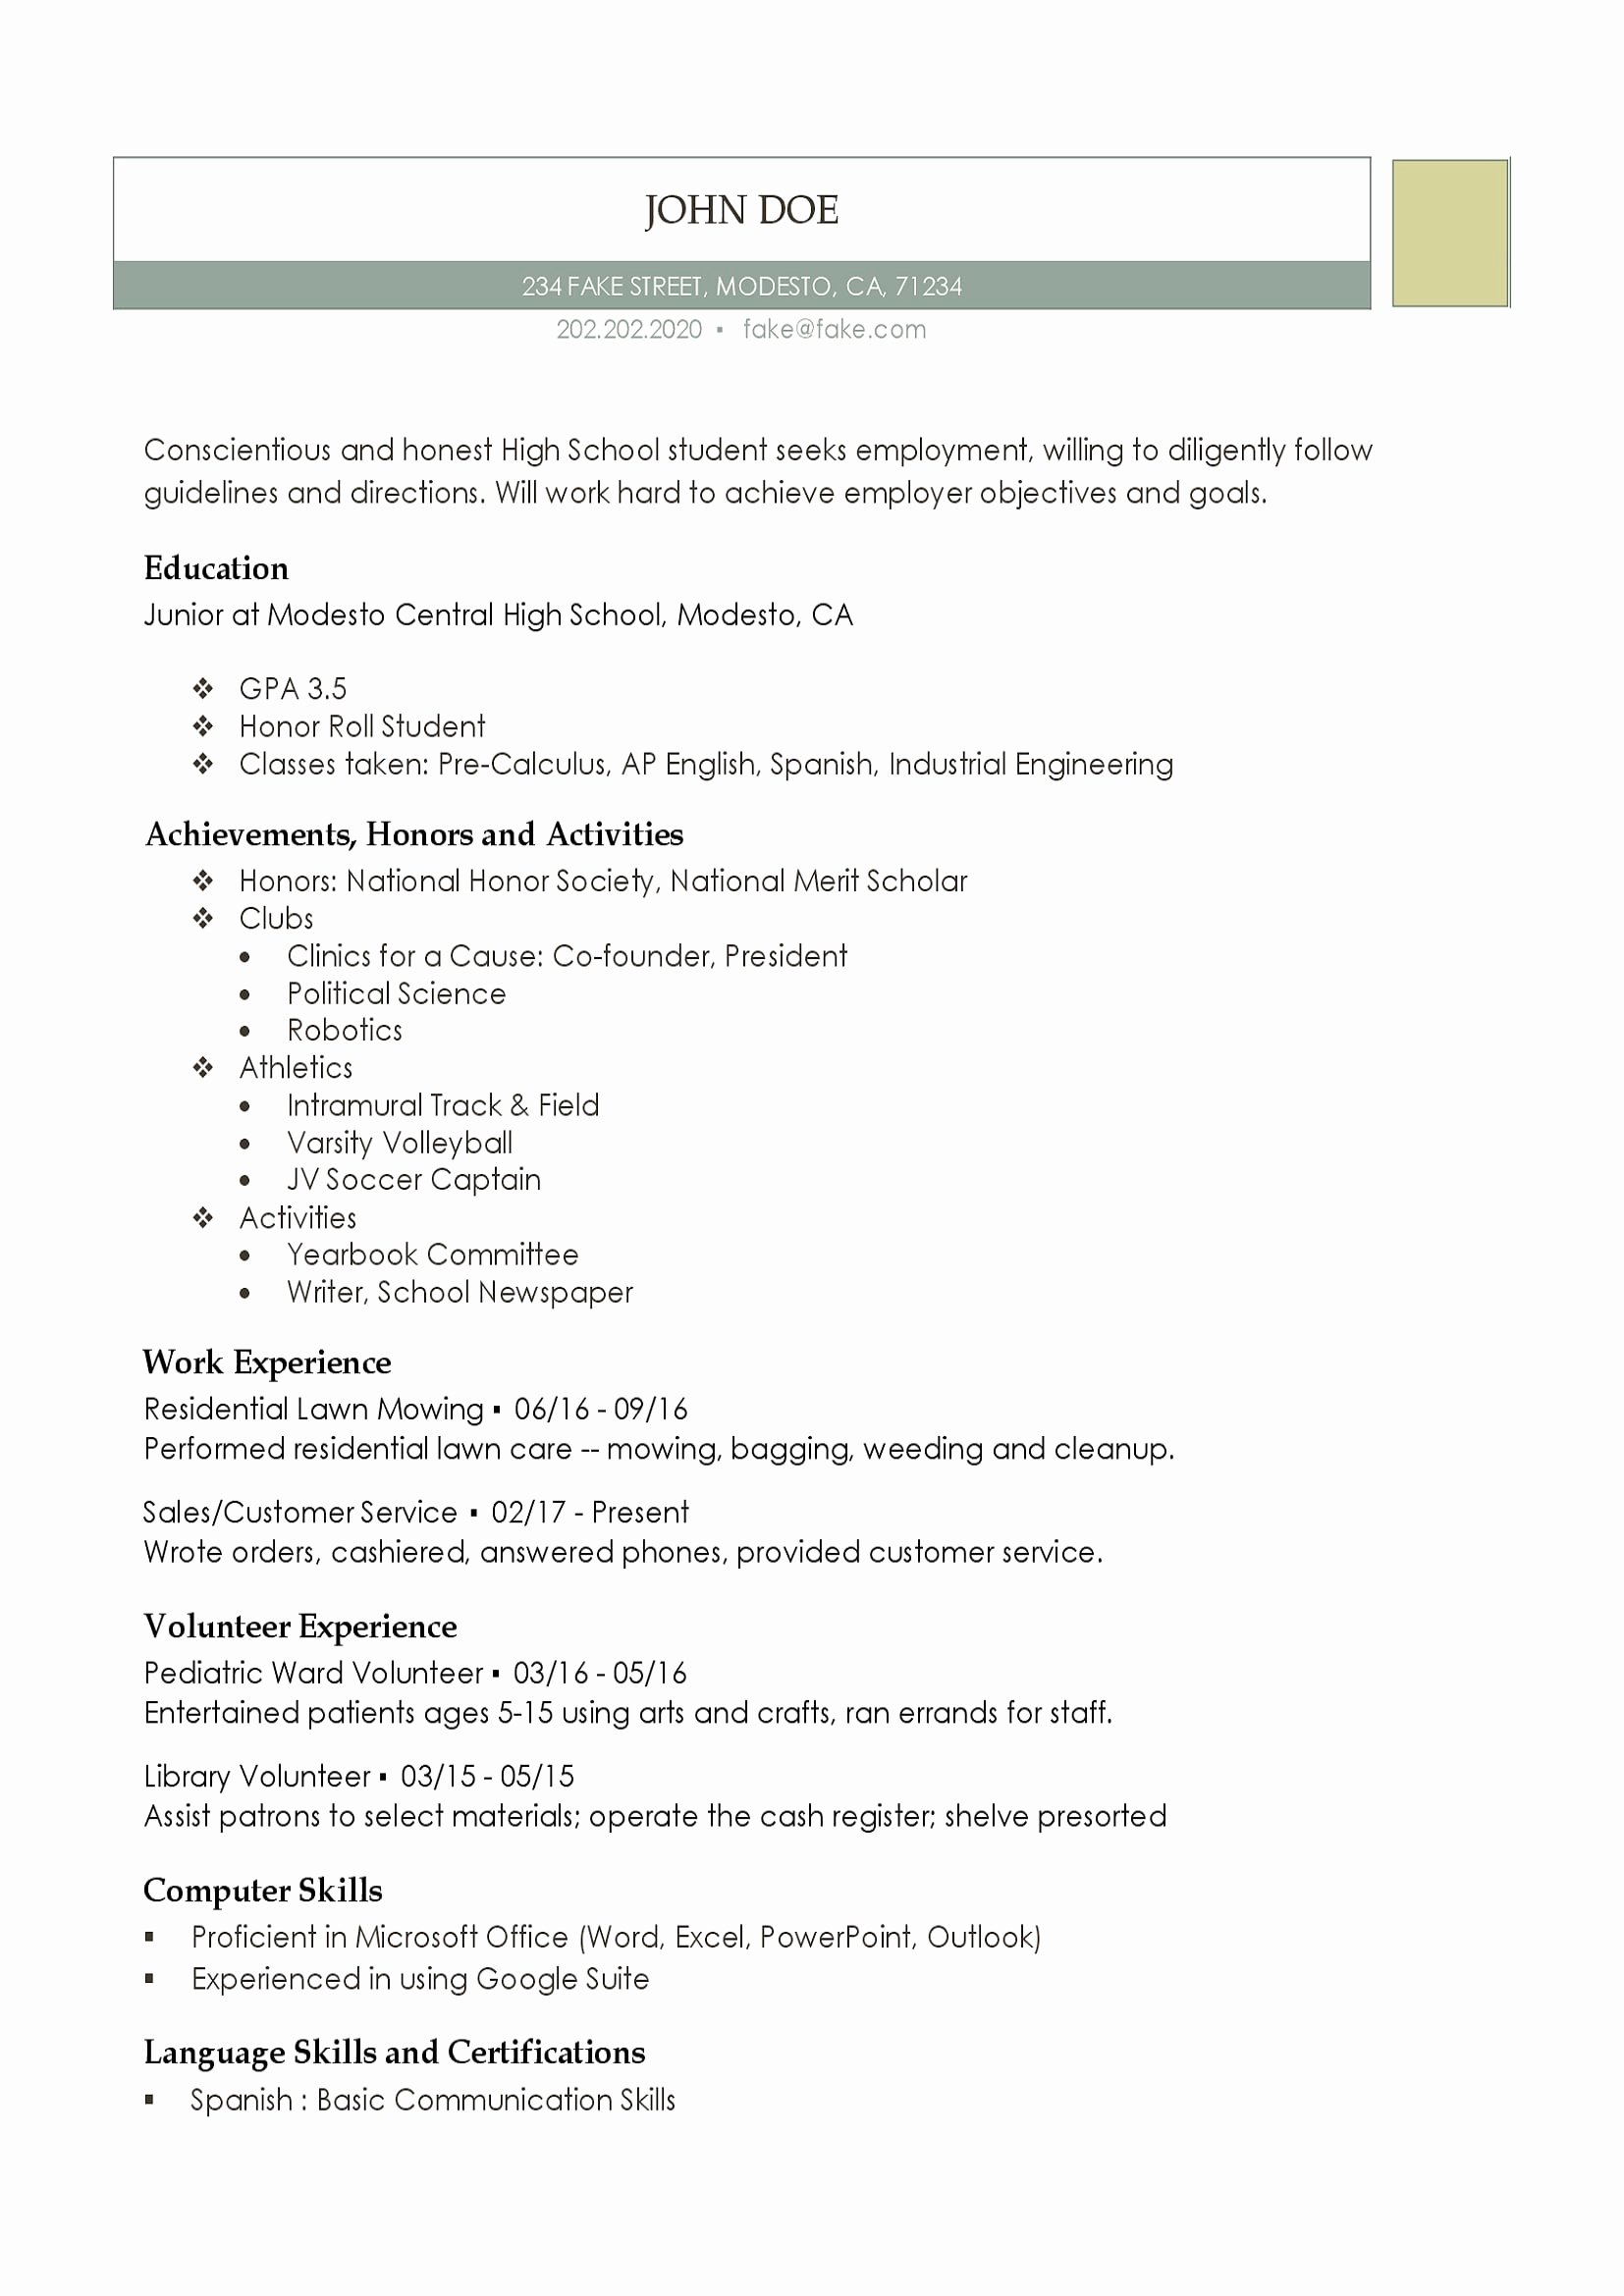 Resumes for High School Students Unique High School Resume Resumes Perfect for High School Students